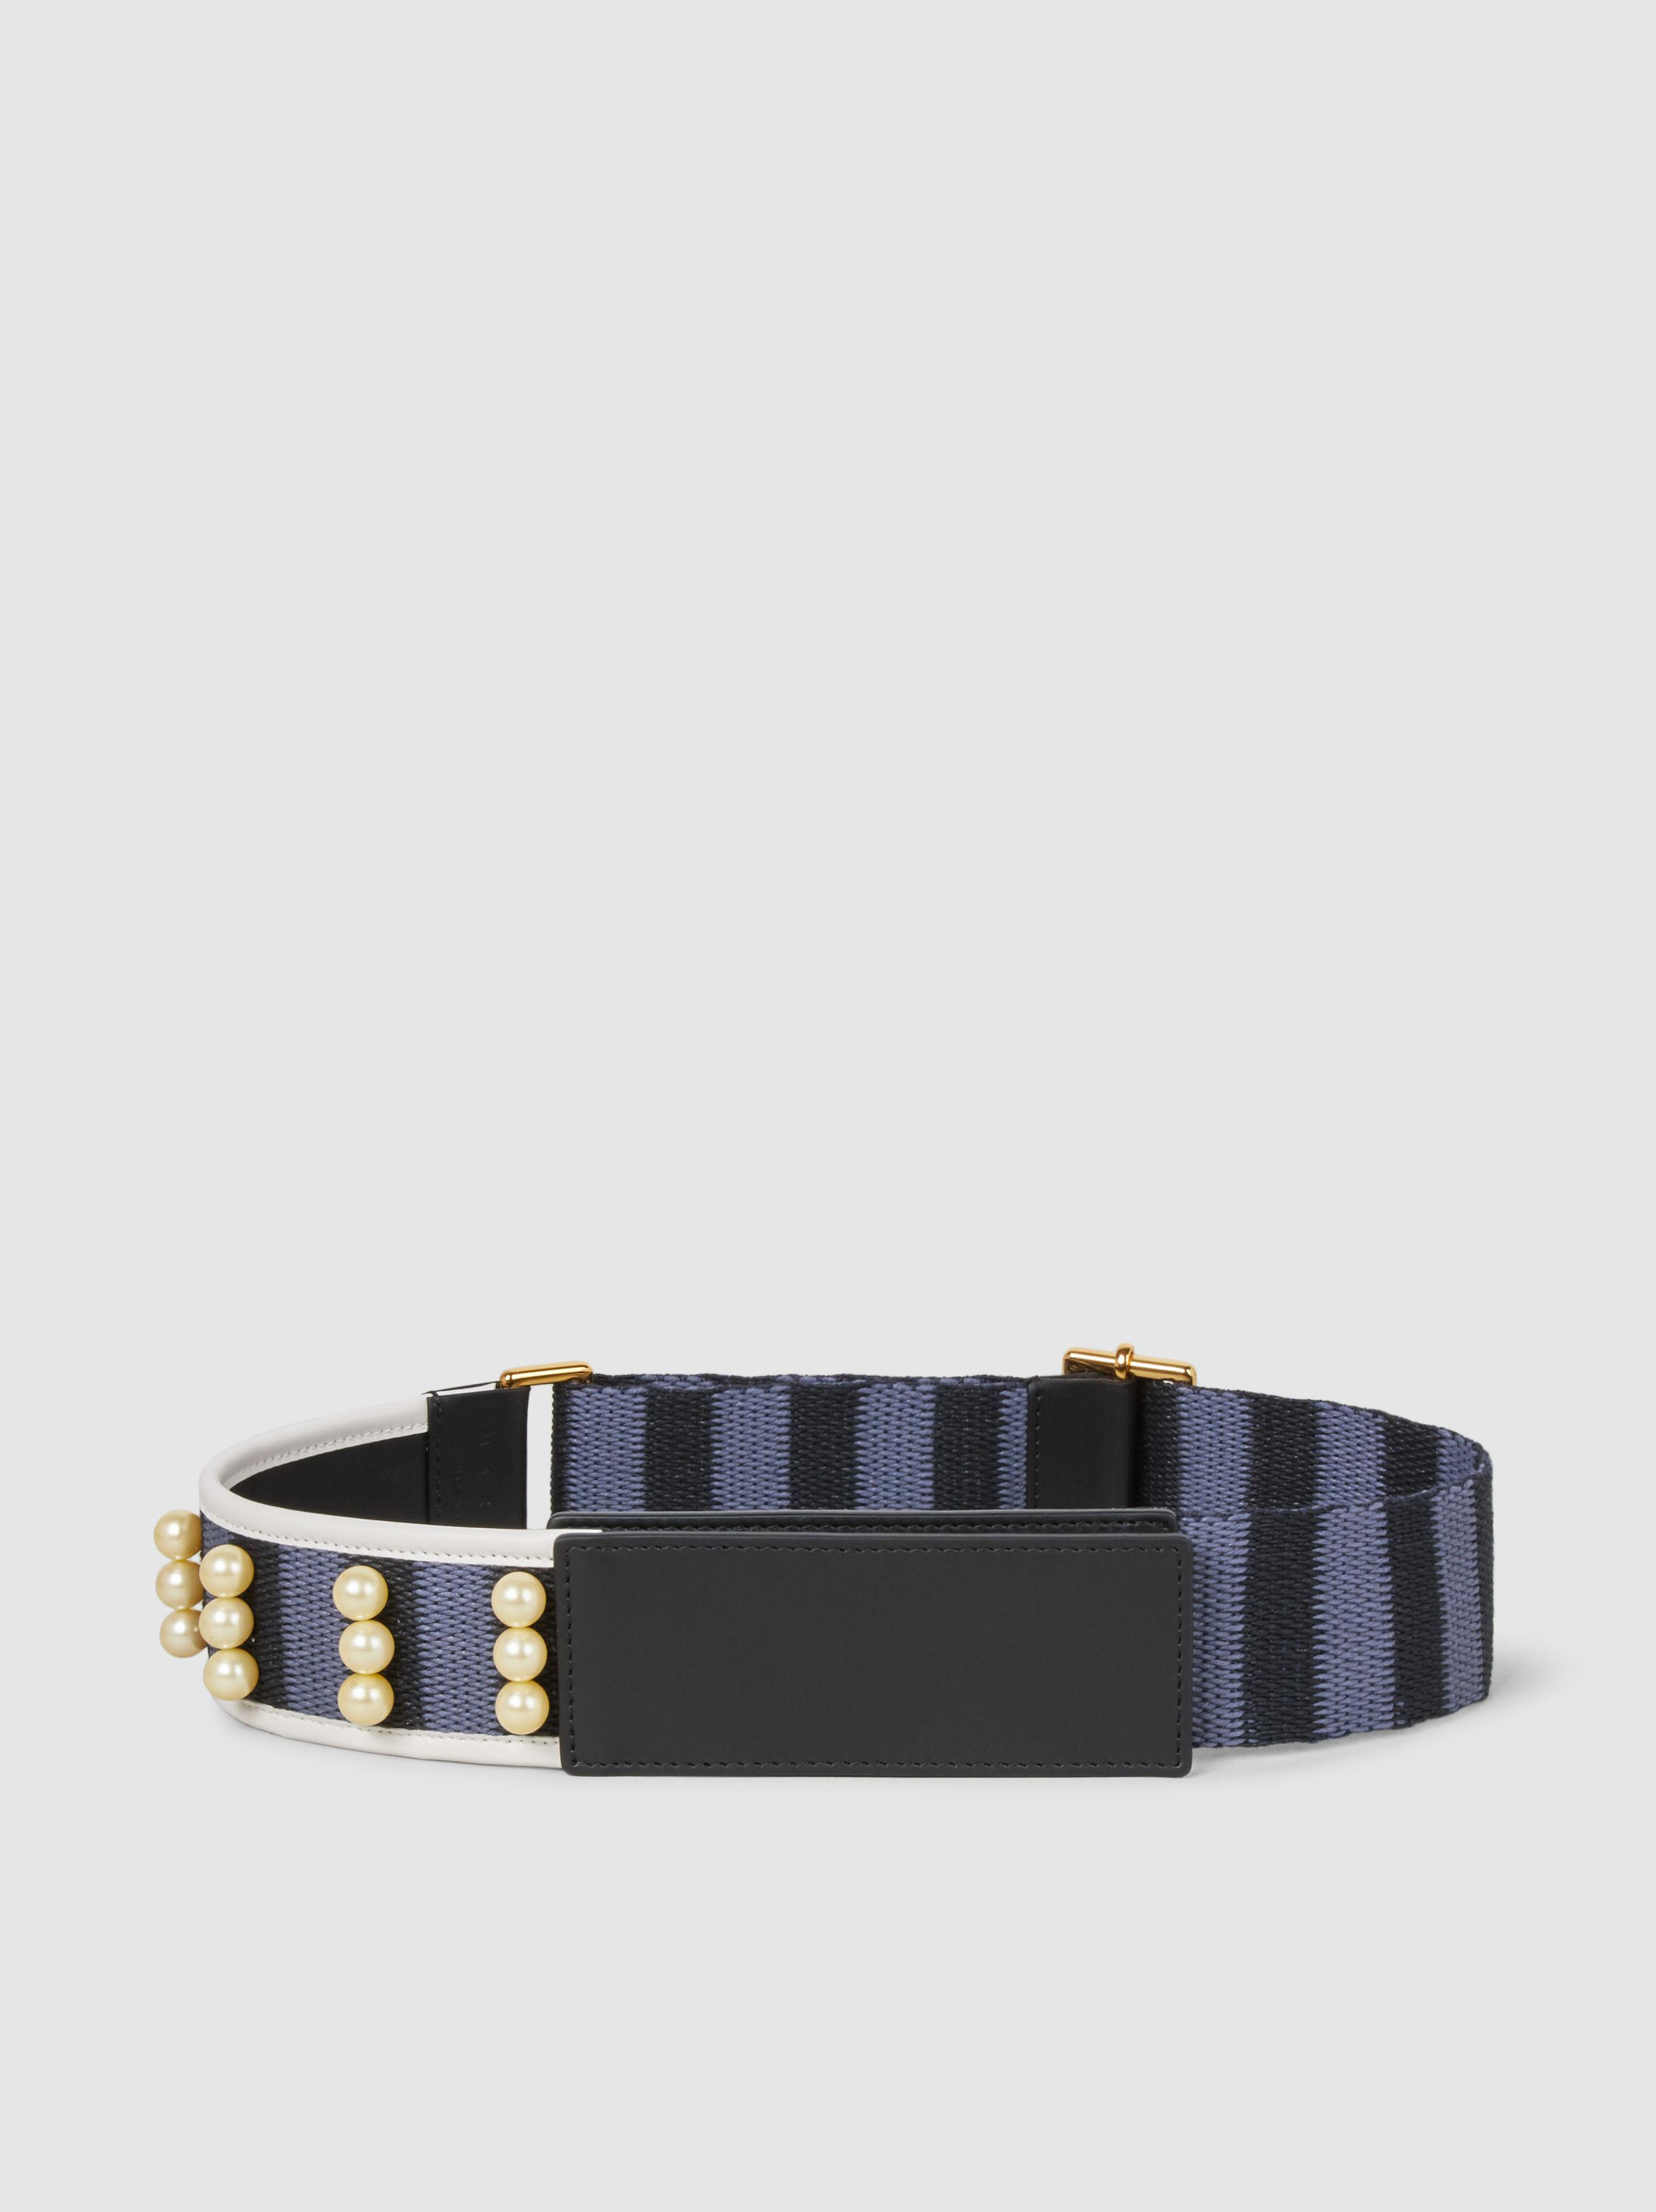 Embellished Leather Belt Marni P0rV1lJMZb